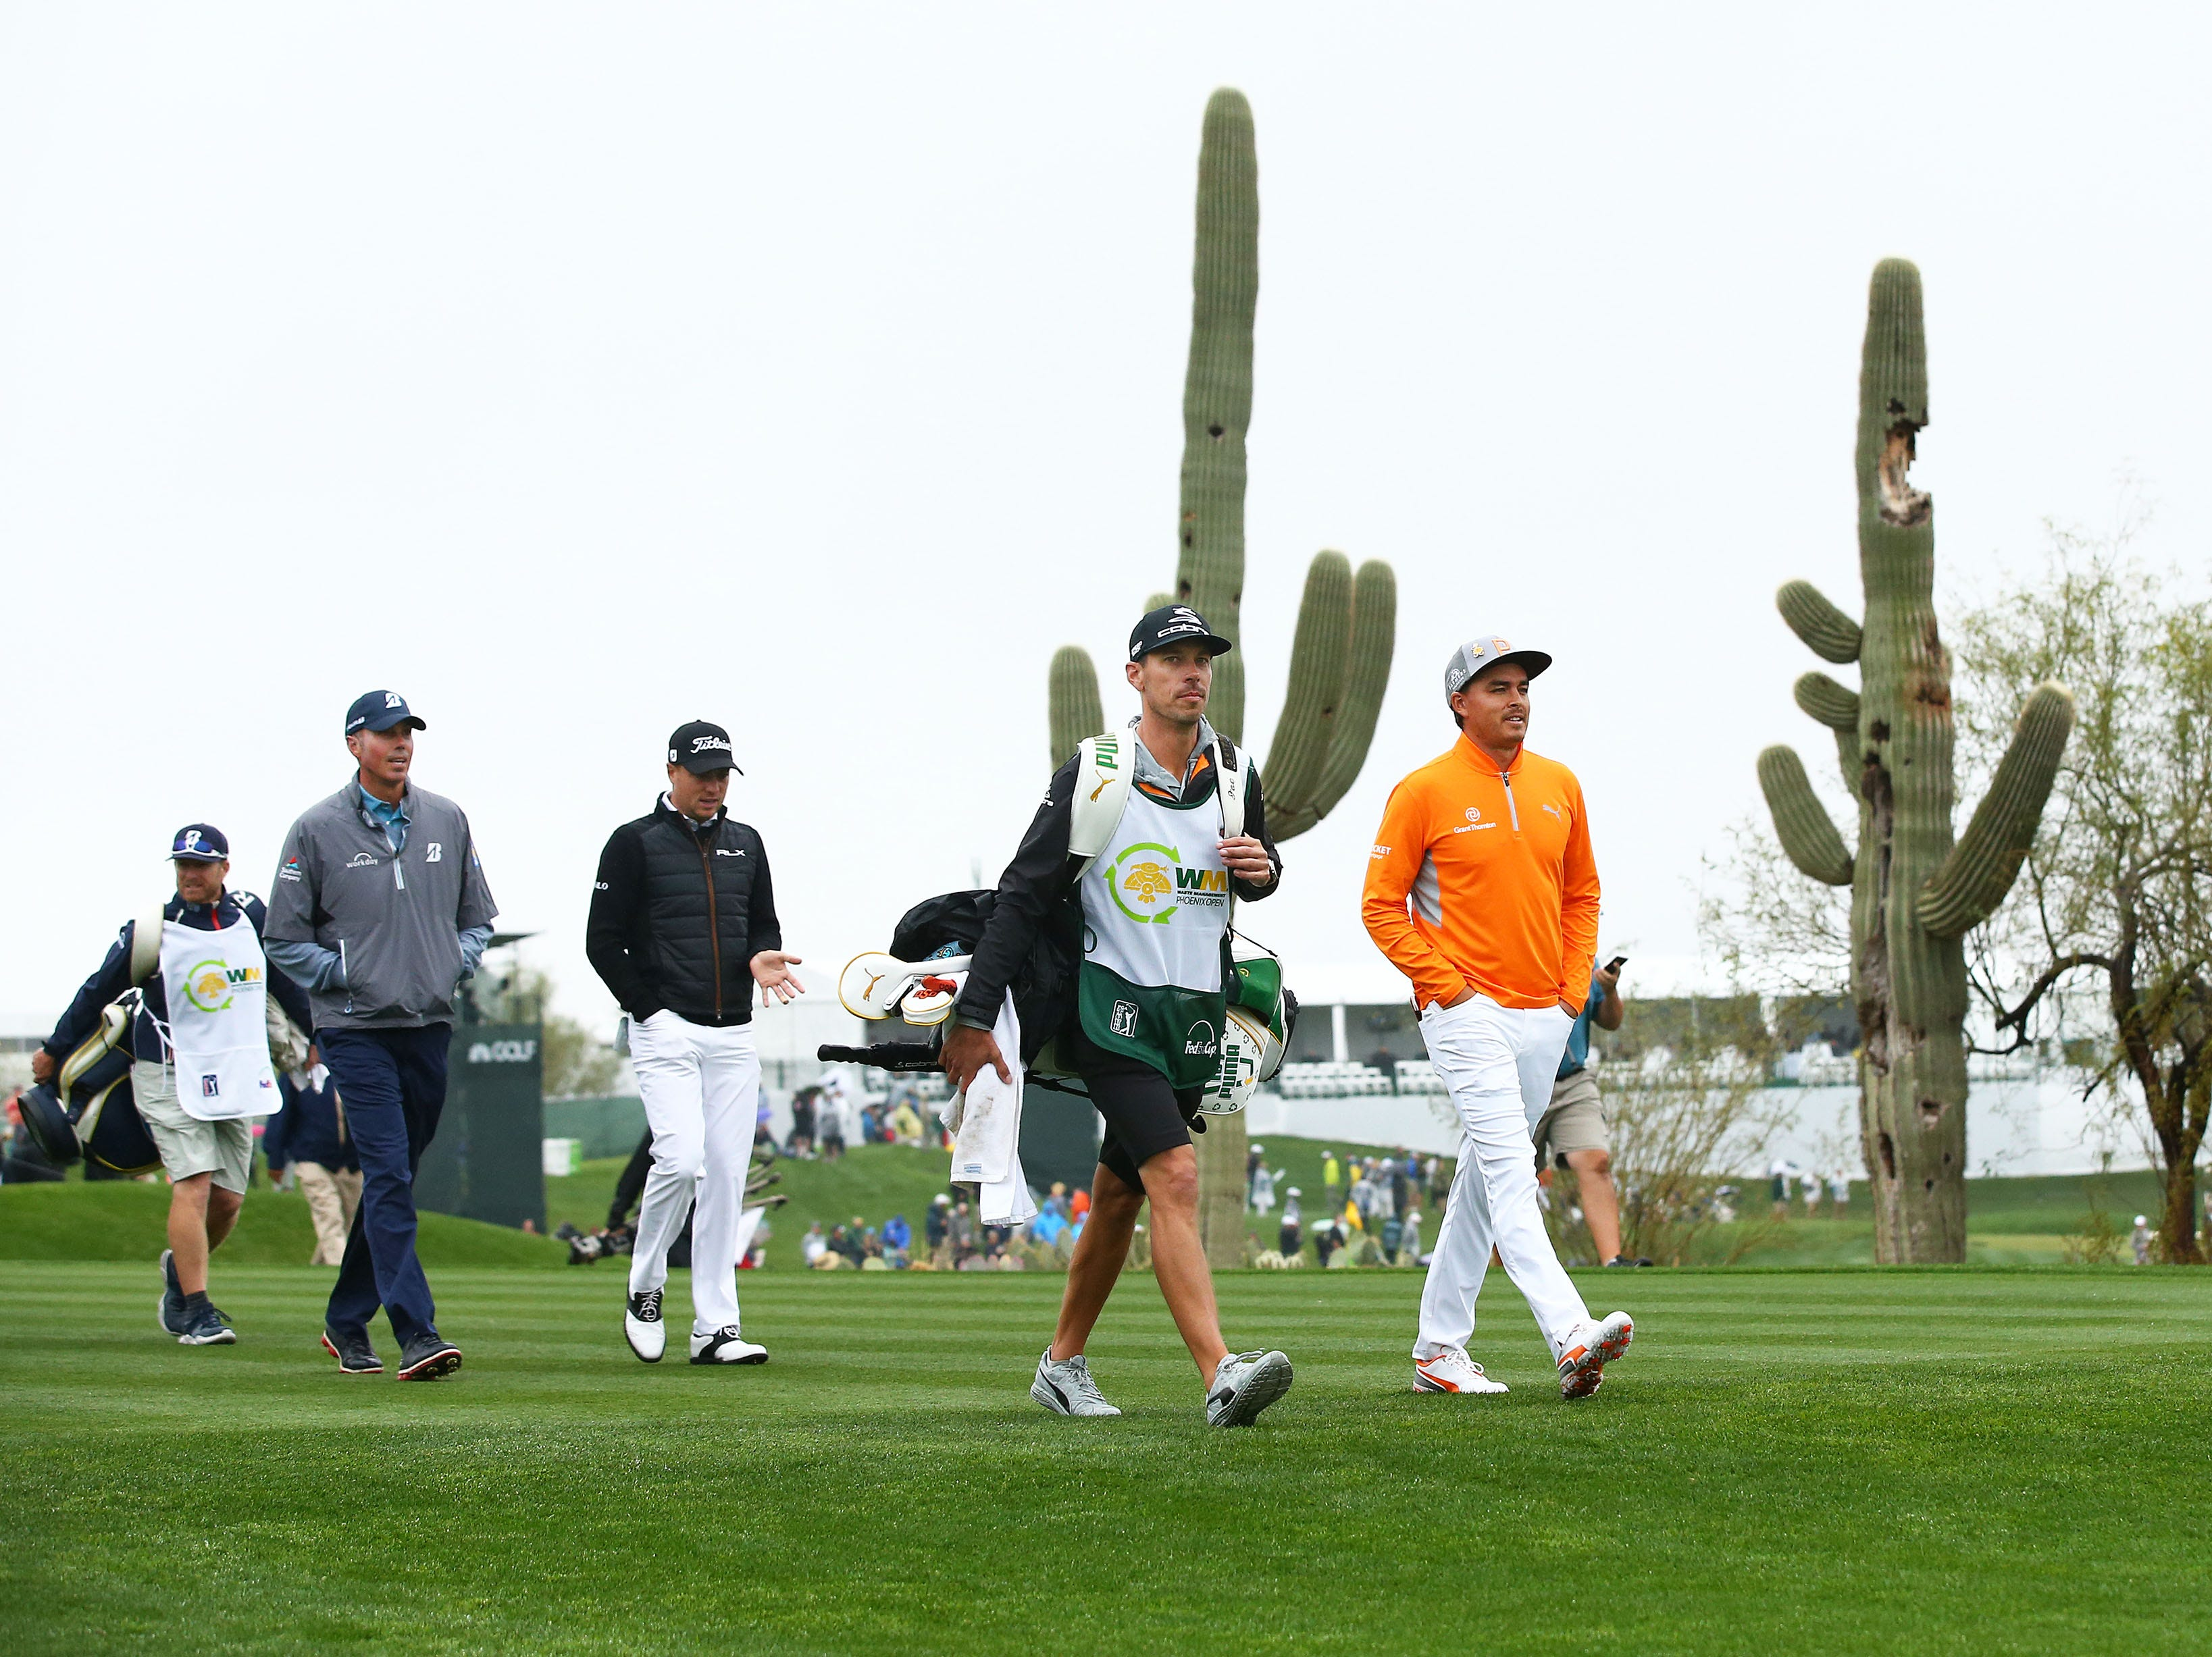 Rickie Fowler, Justin Thomas and Matt Kuchar walk-off the first tee box during final round action on Feb. 3 during the Waste Management Phoenix Open at the TPC Scottsdale Stadium Course.